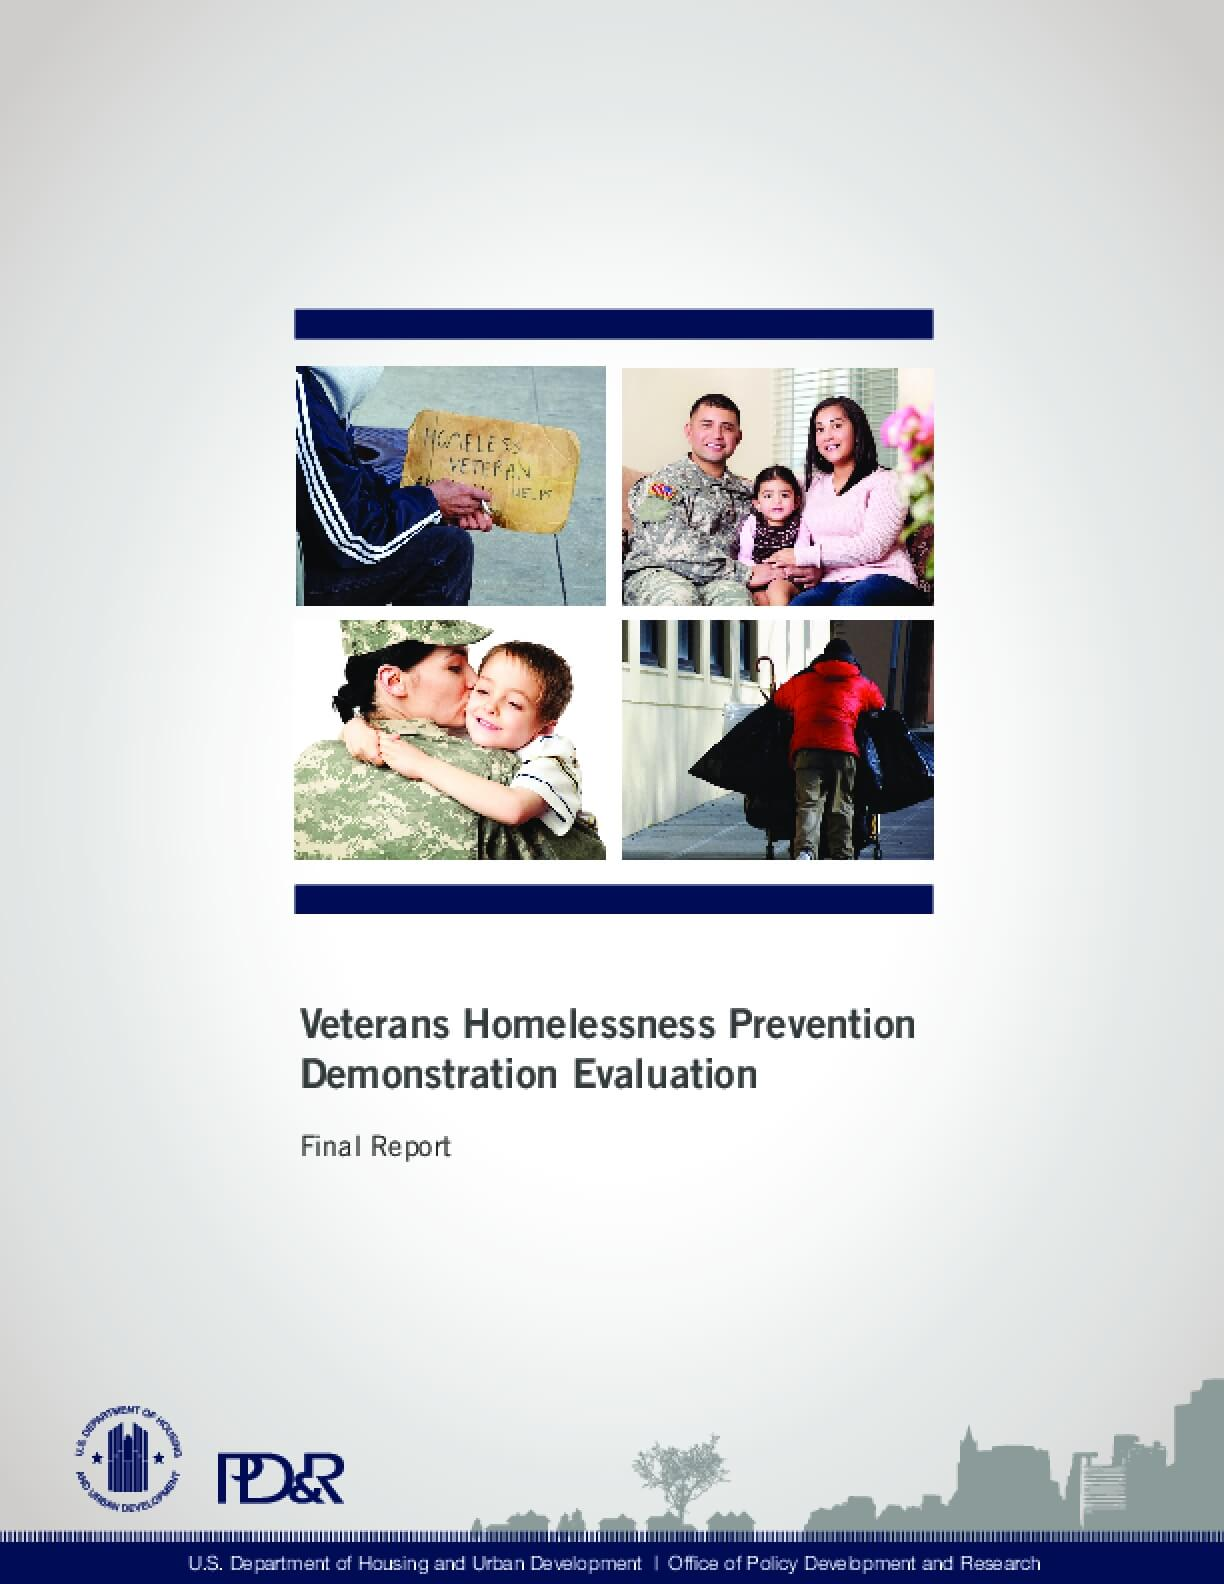 Veterans Homelessness Prevention Demonstration Evaluation